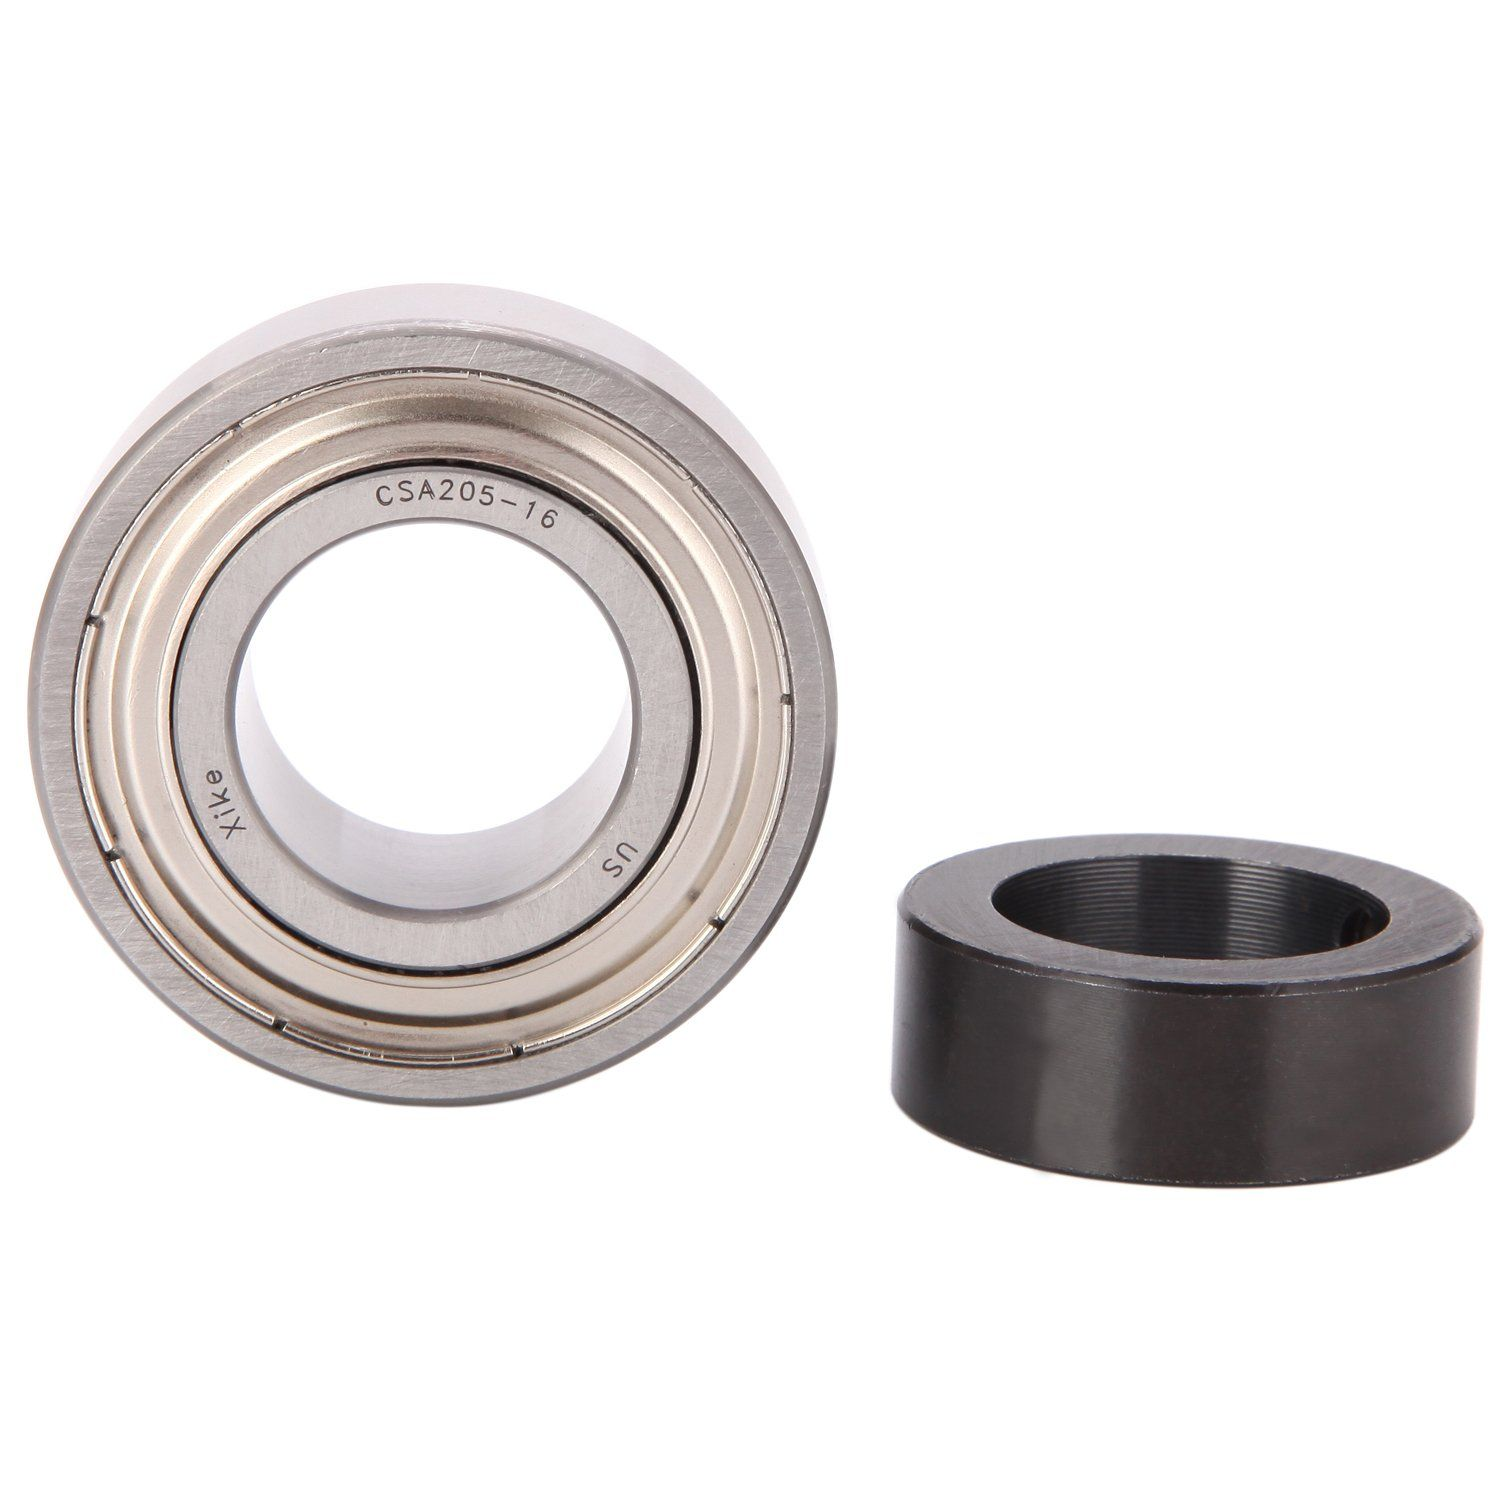 XiKe 2 Pack CSA20516 or RA100RR Lawn Mowers Spindle Ball